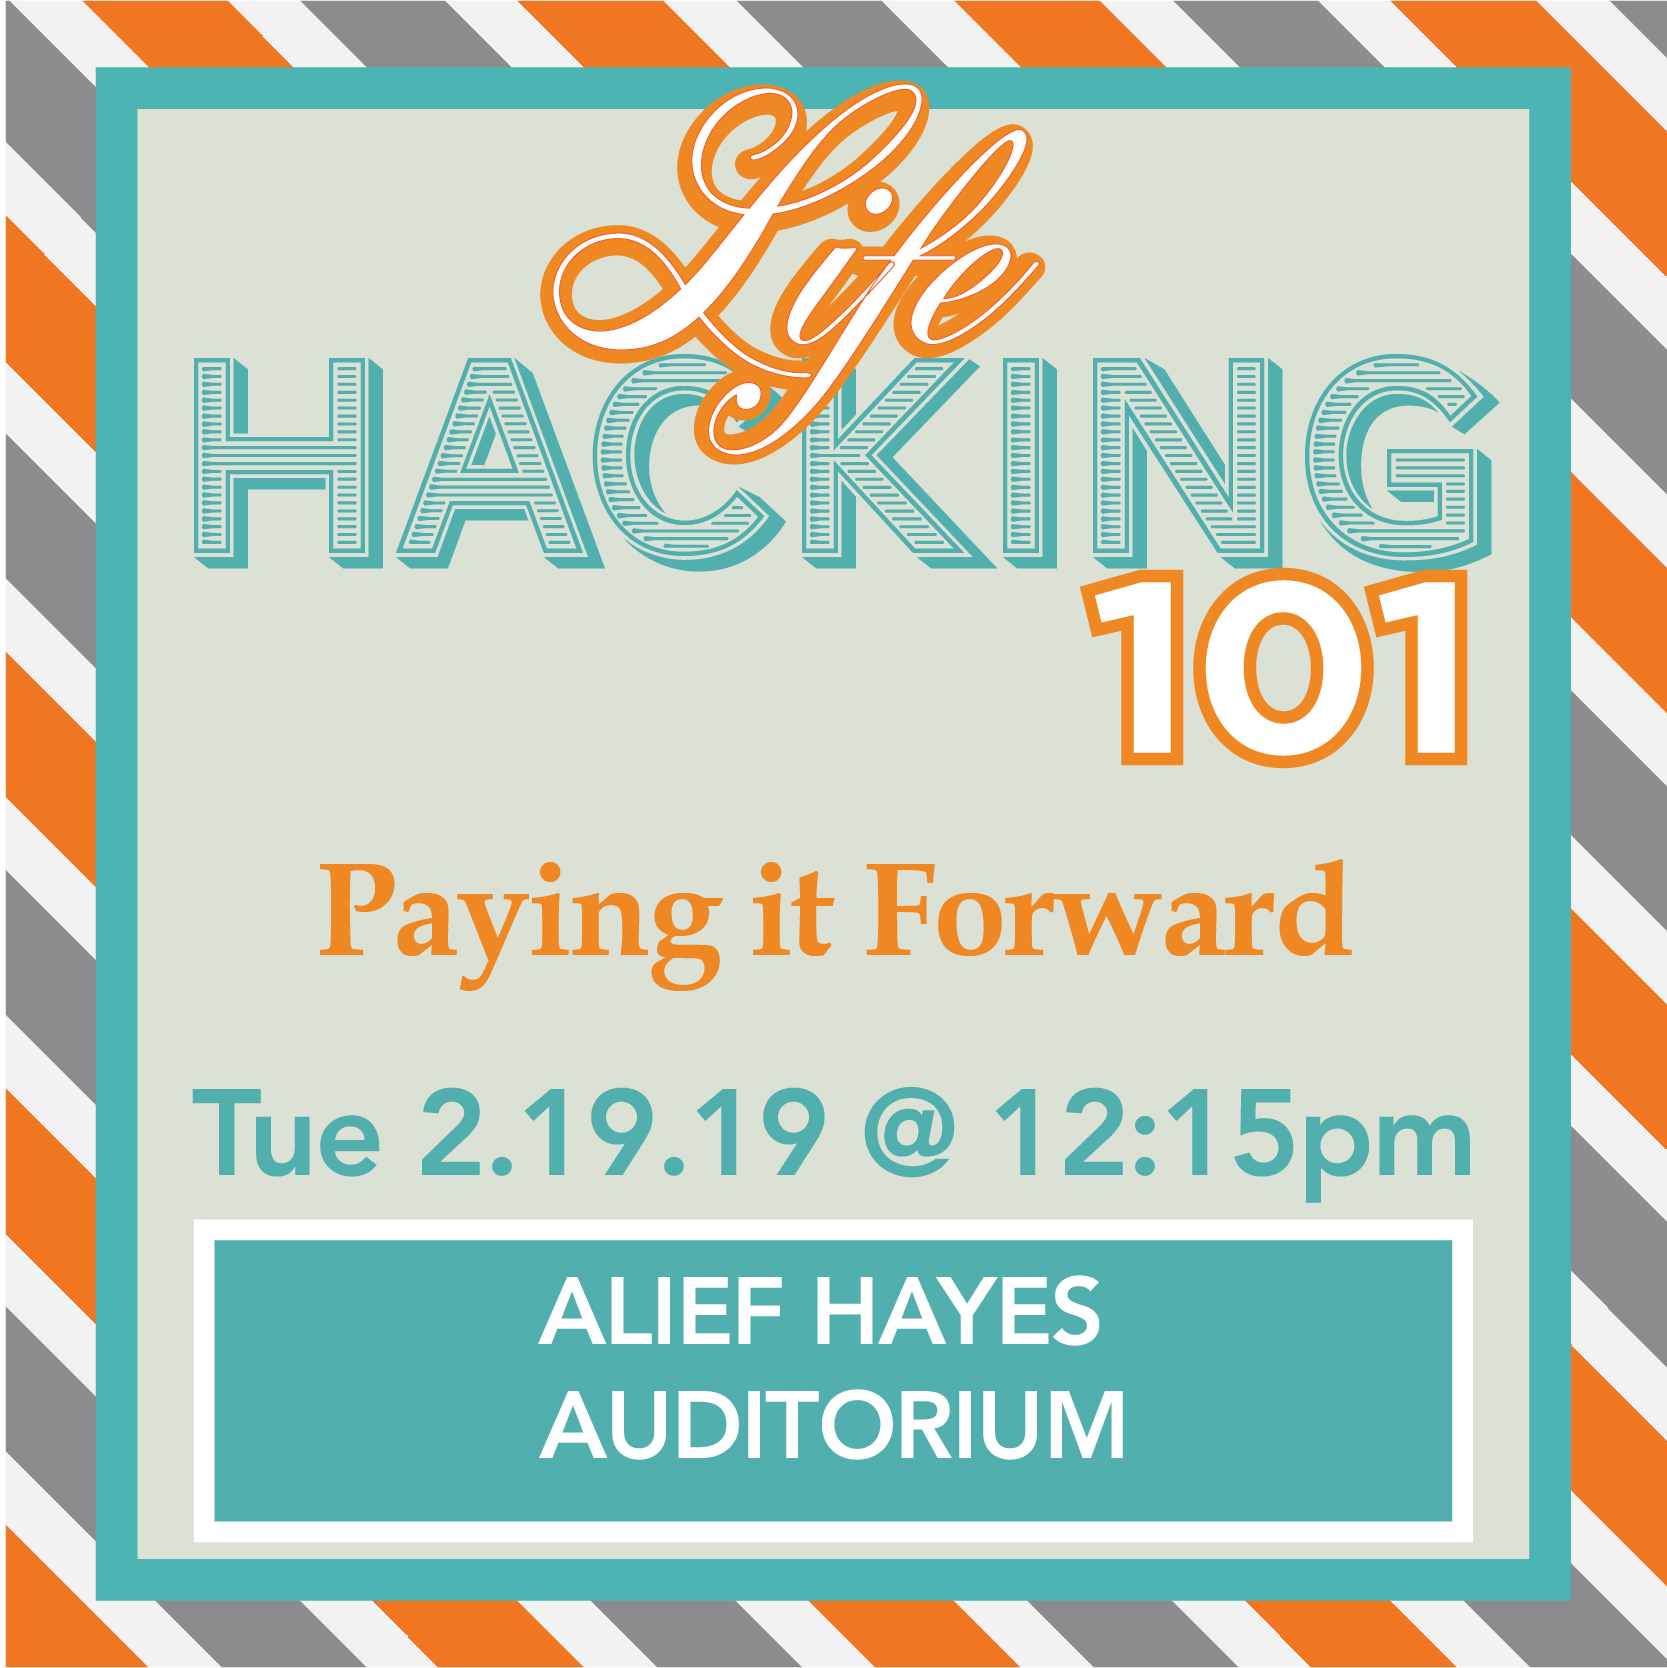 [AH] Lifehacking 101: Paying it Forward